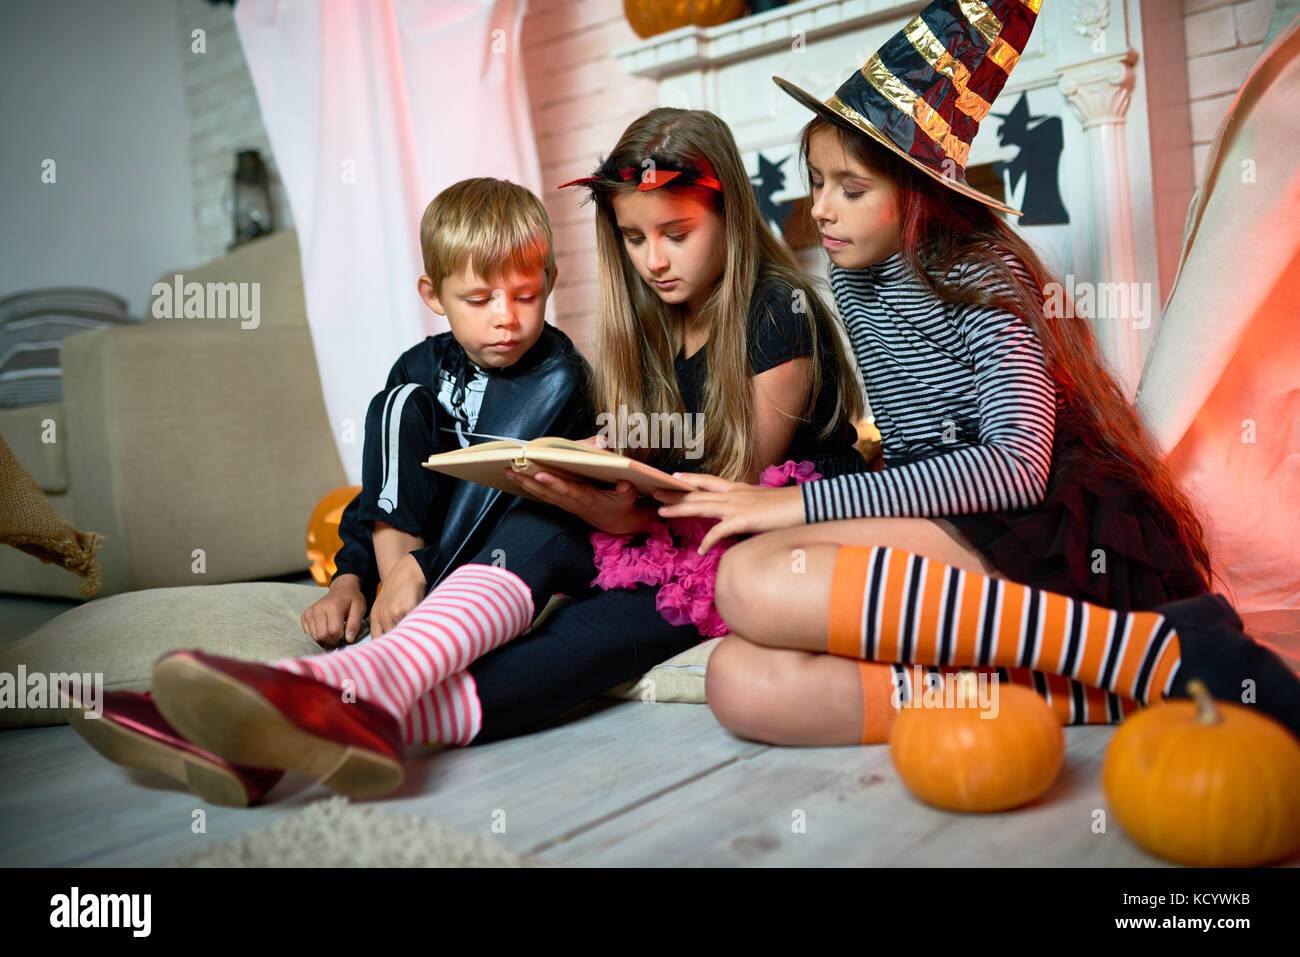 Group of cute kids wearing Halloween costumes gathered together at living room decorated for holiday and reading - Stock Image